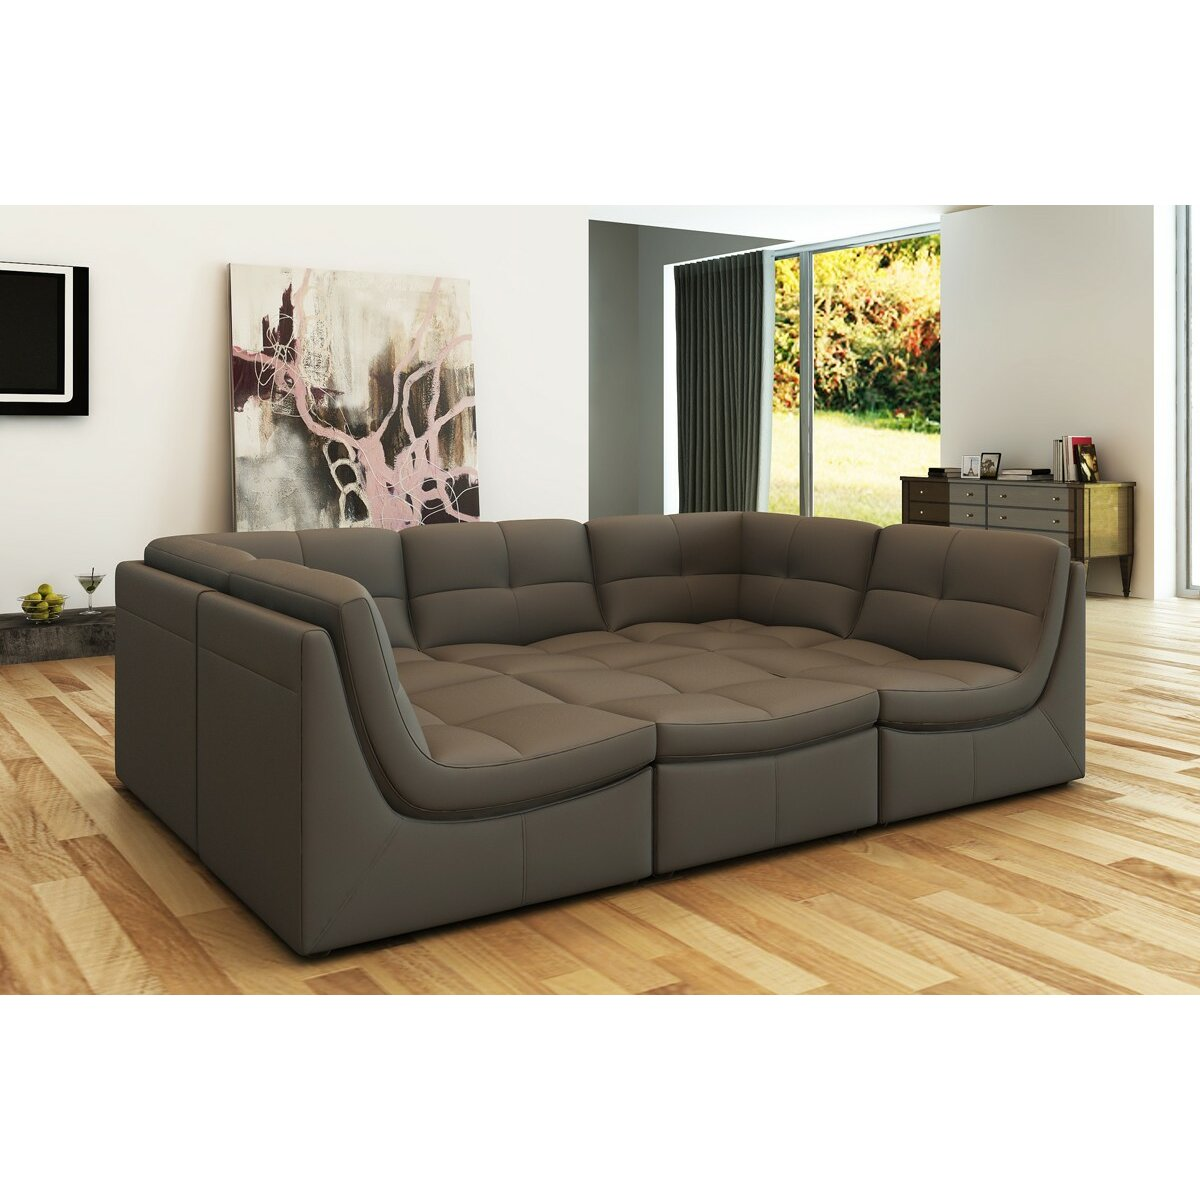 Hokku Designs Monaco Modular Sectional Reviews Wayfair